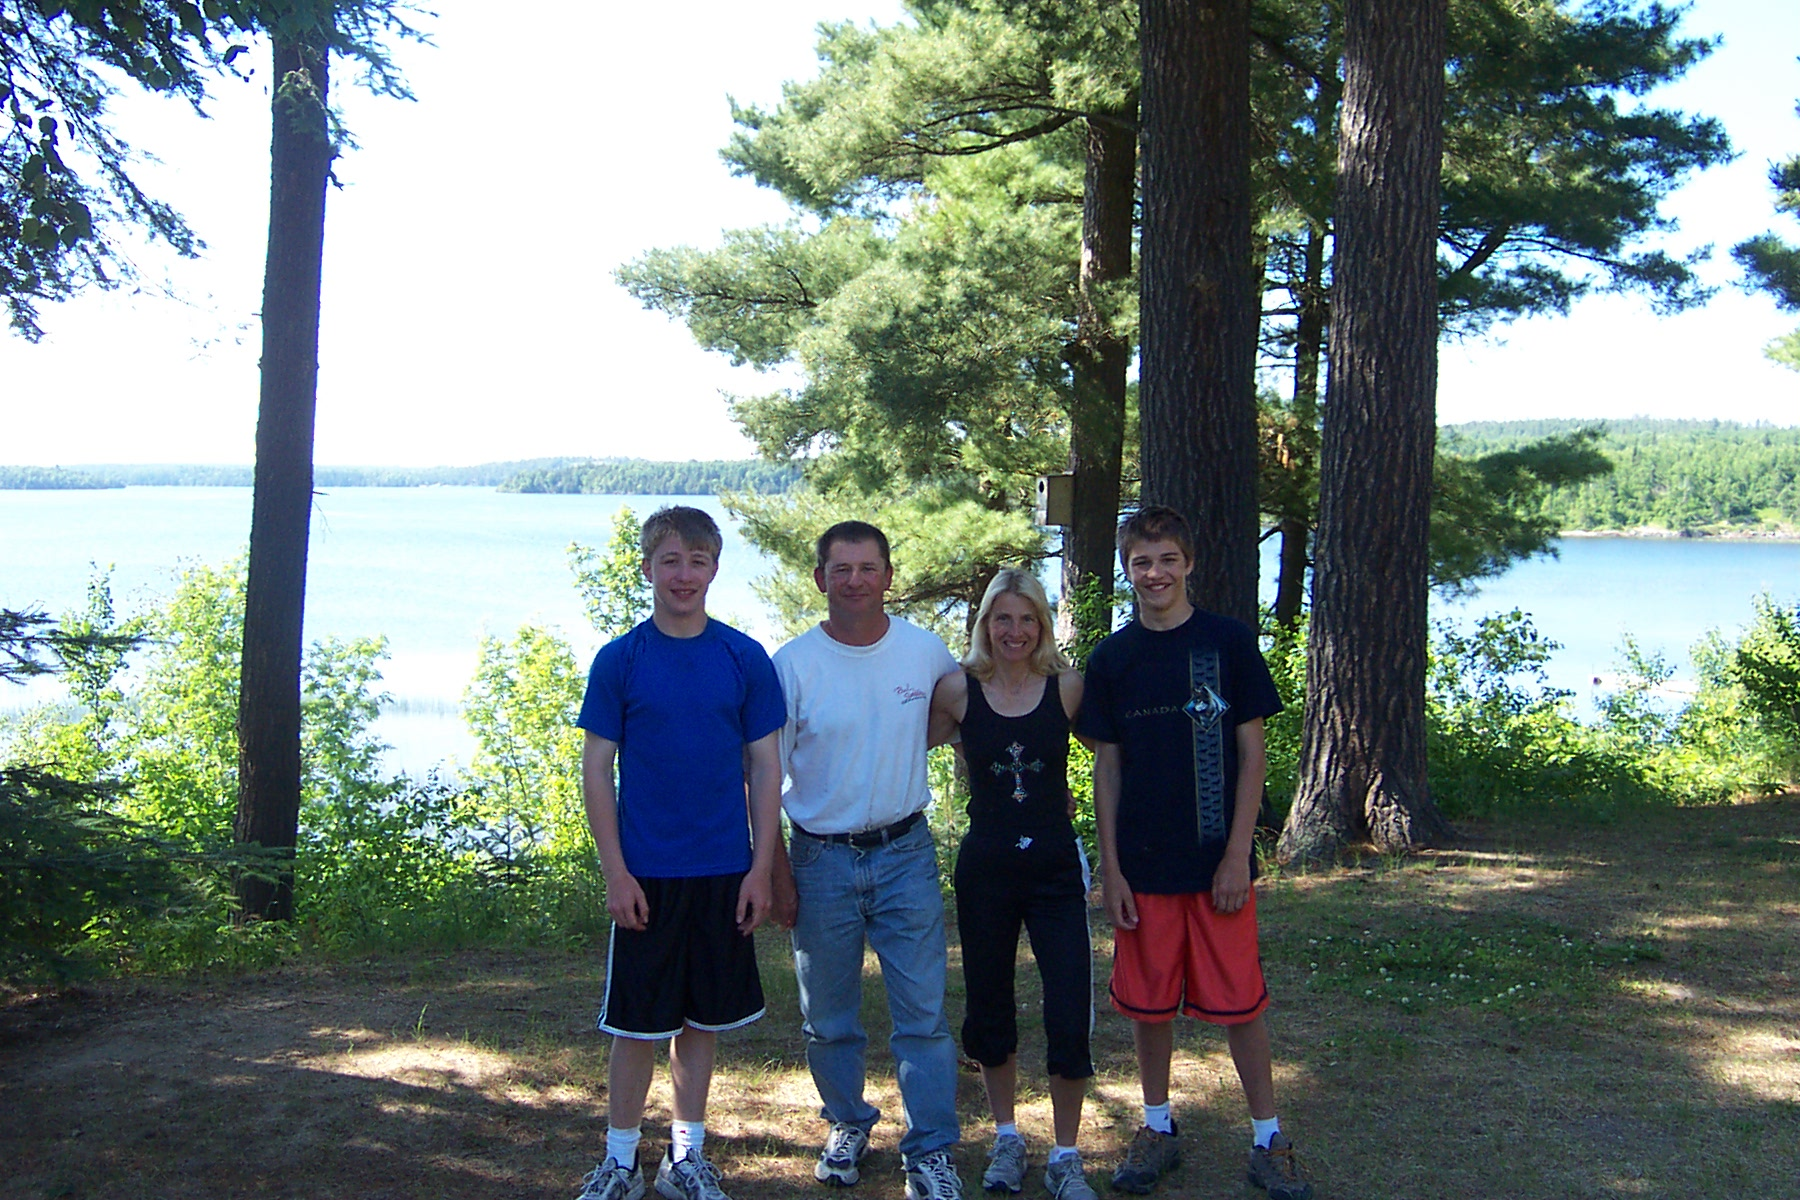 Keith and family at camp